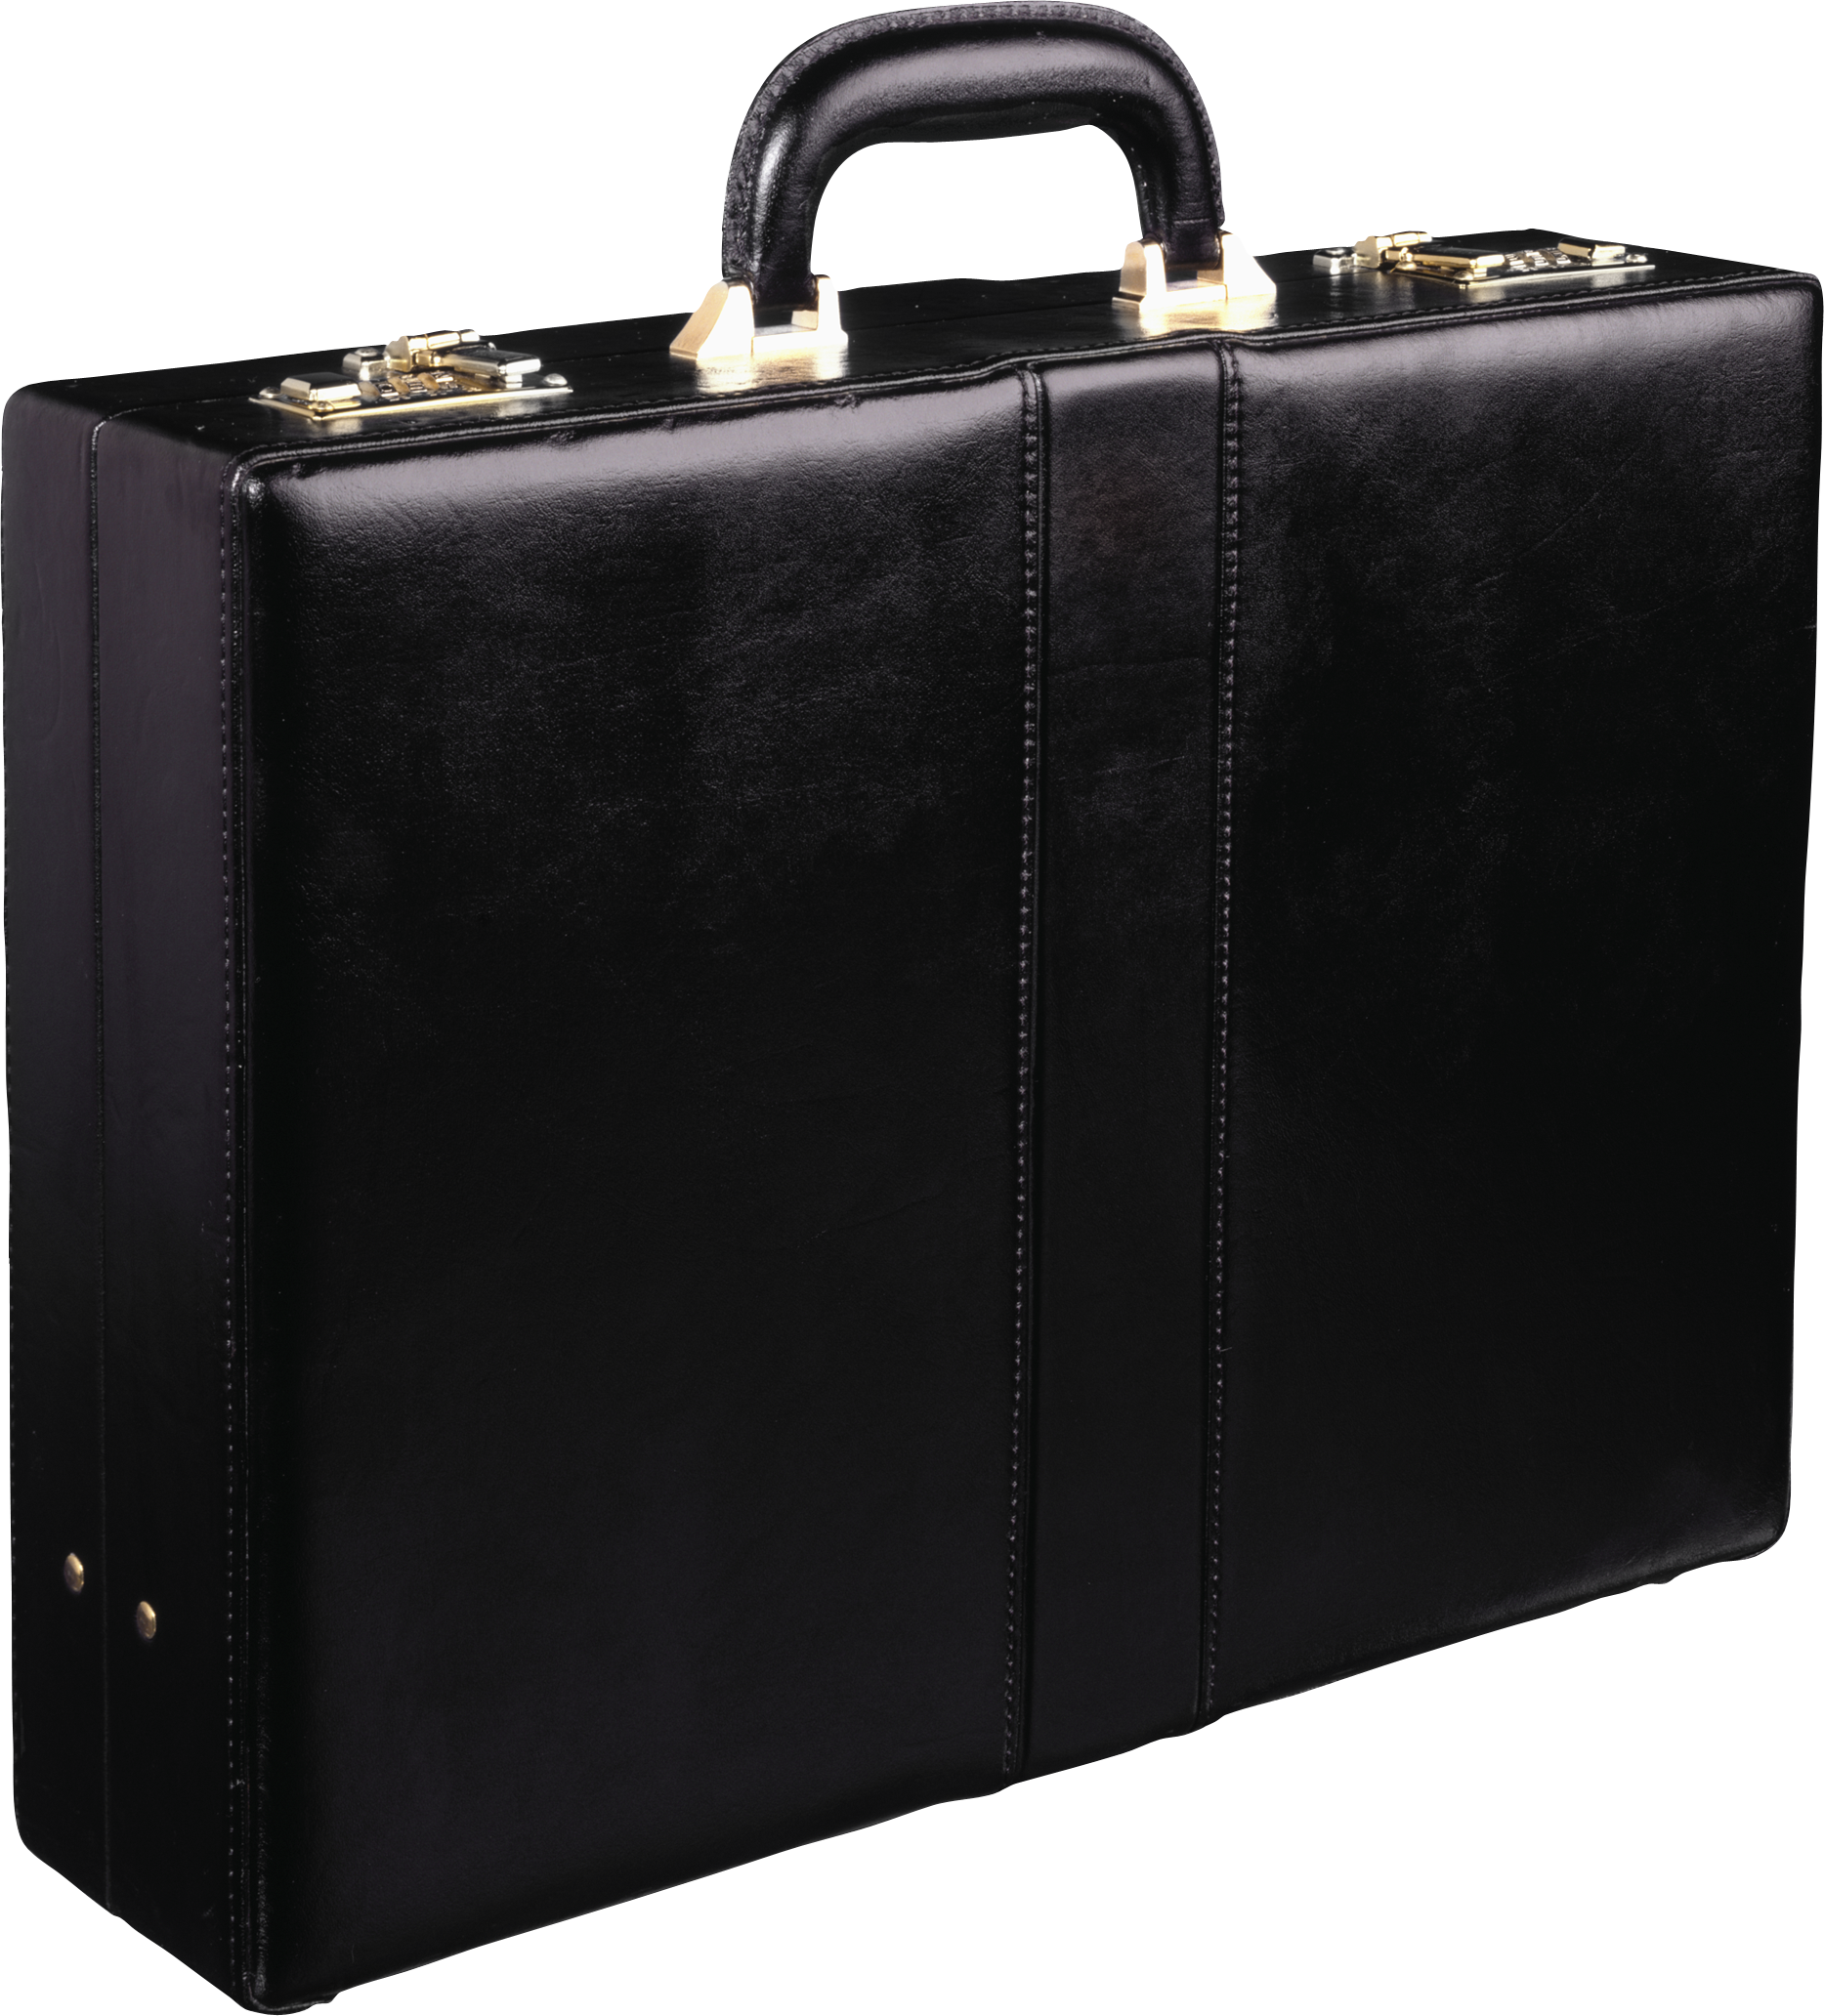 Briefcase transparent black and white. Suitcase png image purepng